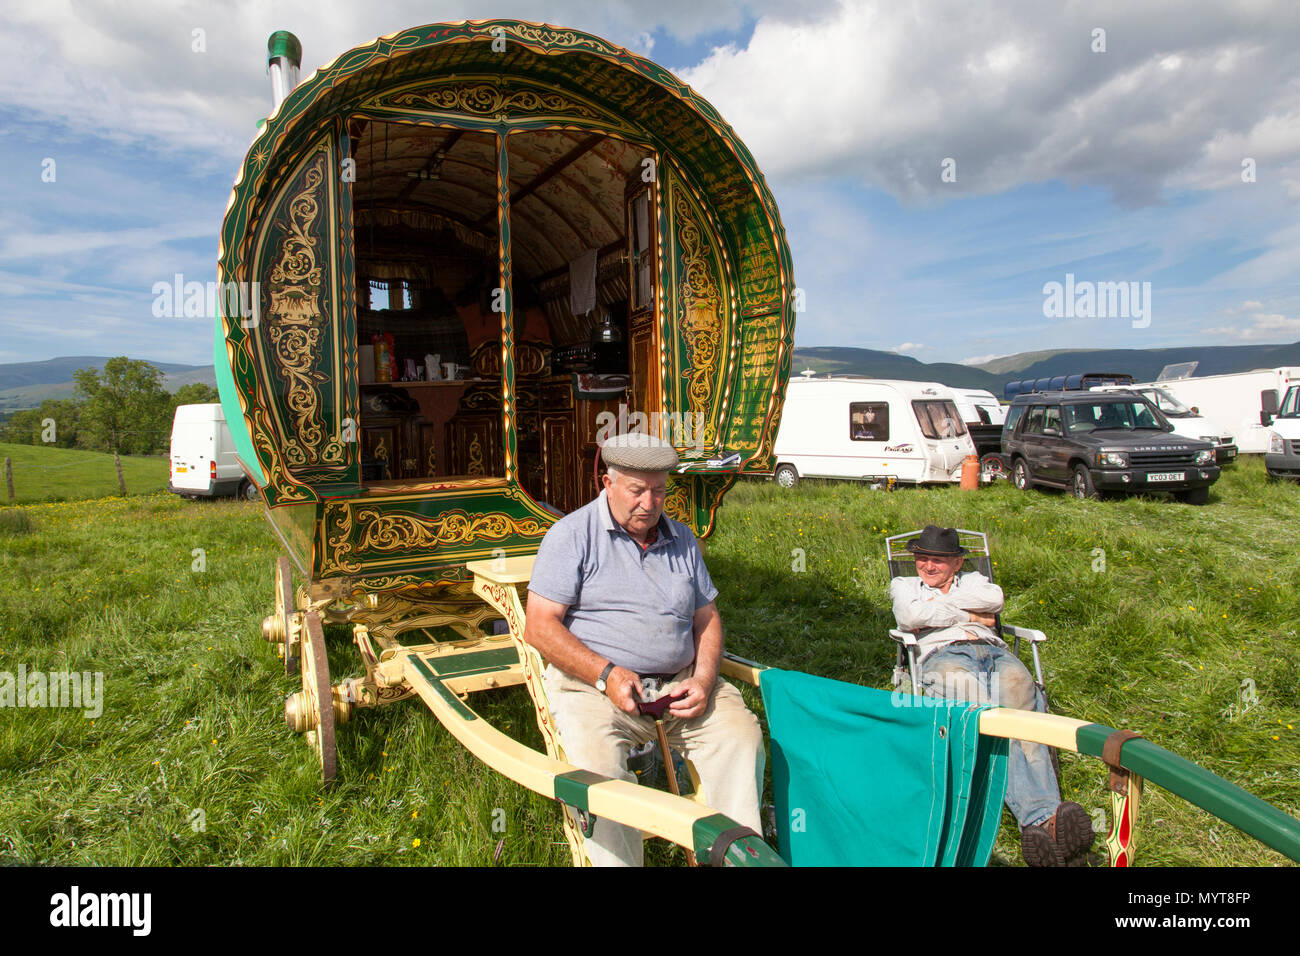 Appleby-in-Westmorland, U.K. 7th June 2018. Travellers  at the Appleby Horse Fair. The fair has existed since 1685 under the protection of a charter granted by King James II. Starting the first week in June and running for a week the fair is visited by Romany Gypsies, Horse Dealers and Travellers from across Europe. Credit: Mark Richardson/Alamy Live News Stock Photo